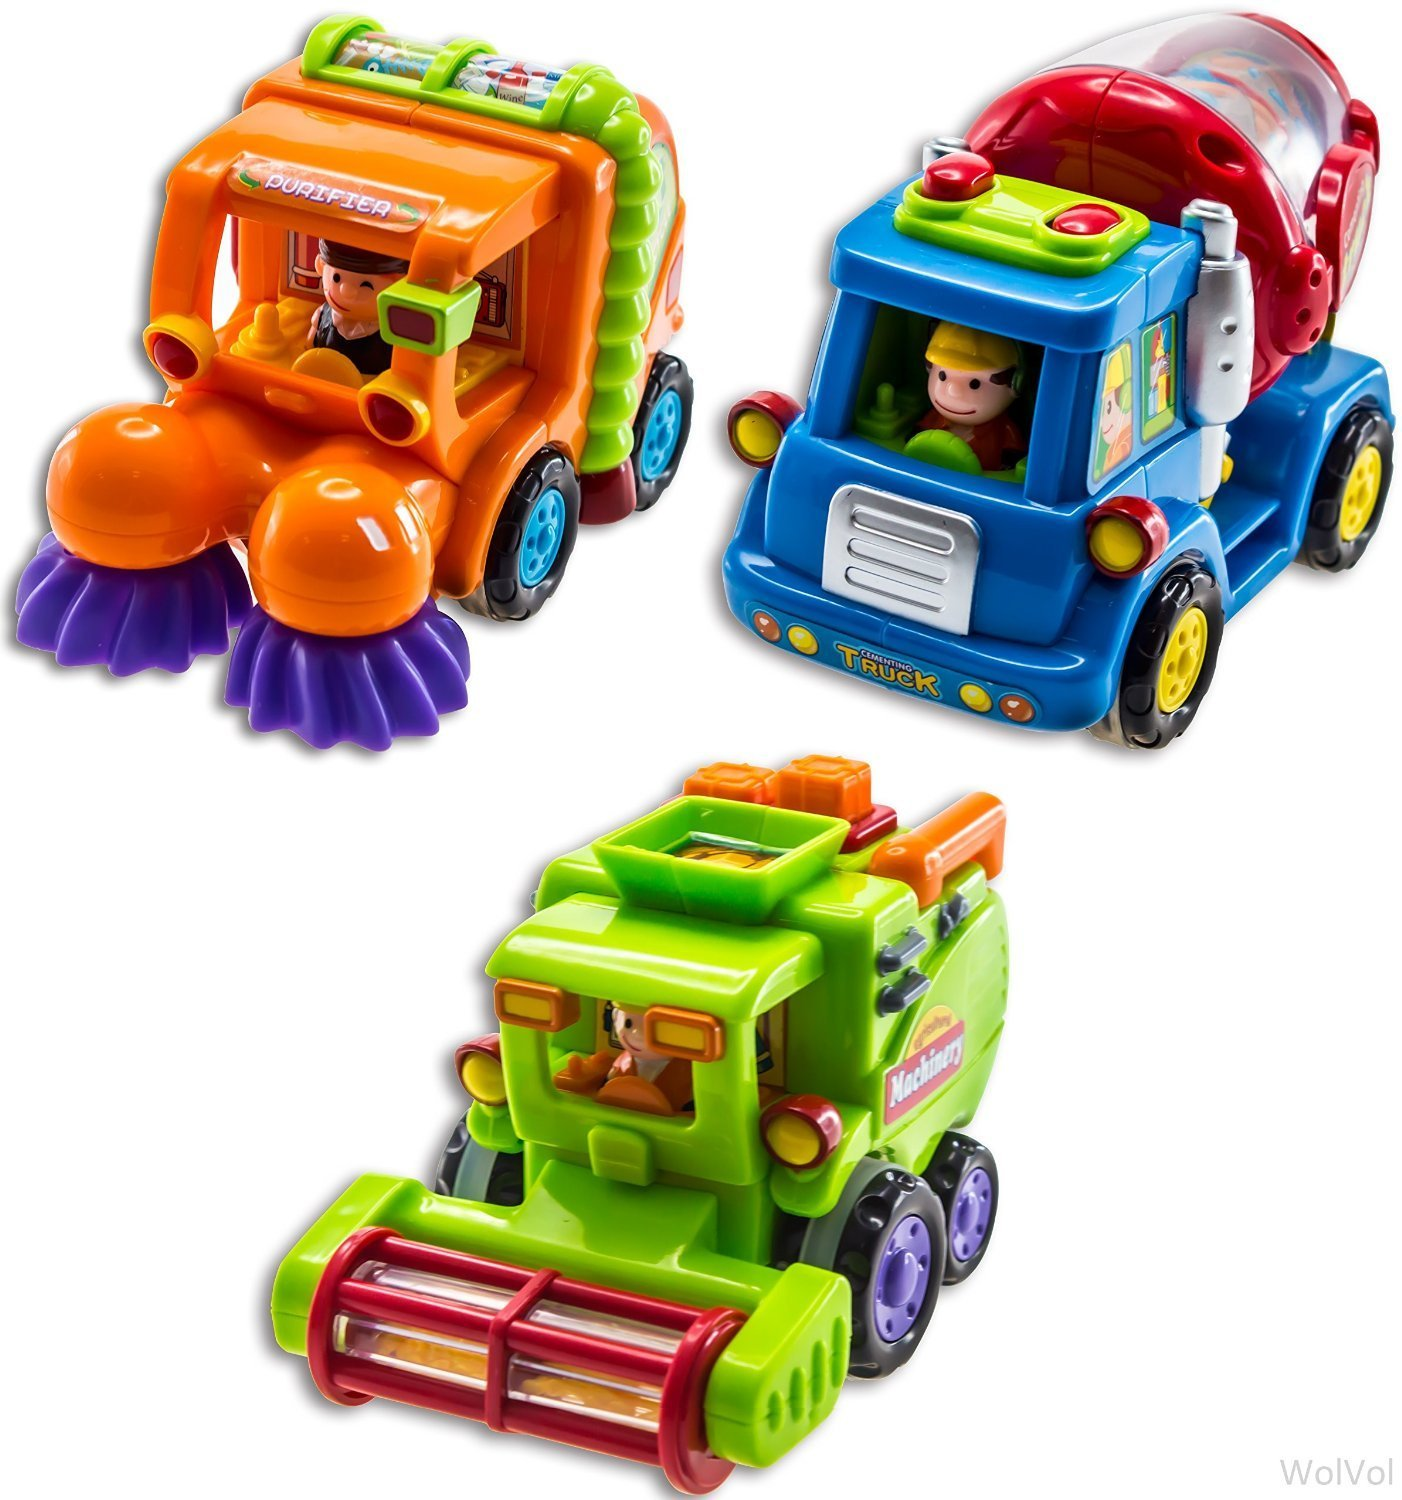 WolVol (Set of 3) Push and Go Friction Powered Car Toys for Boys - Street Sweeper Truck, Cement Mixer Truck, Harvester Toy Truck (Cars Have Automatic Functions) by WolVol (Image #1)